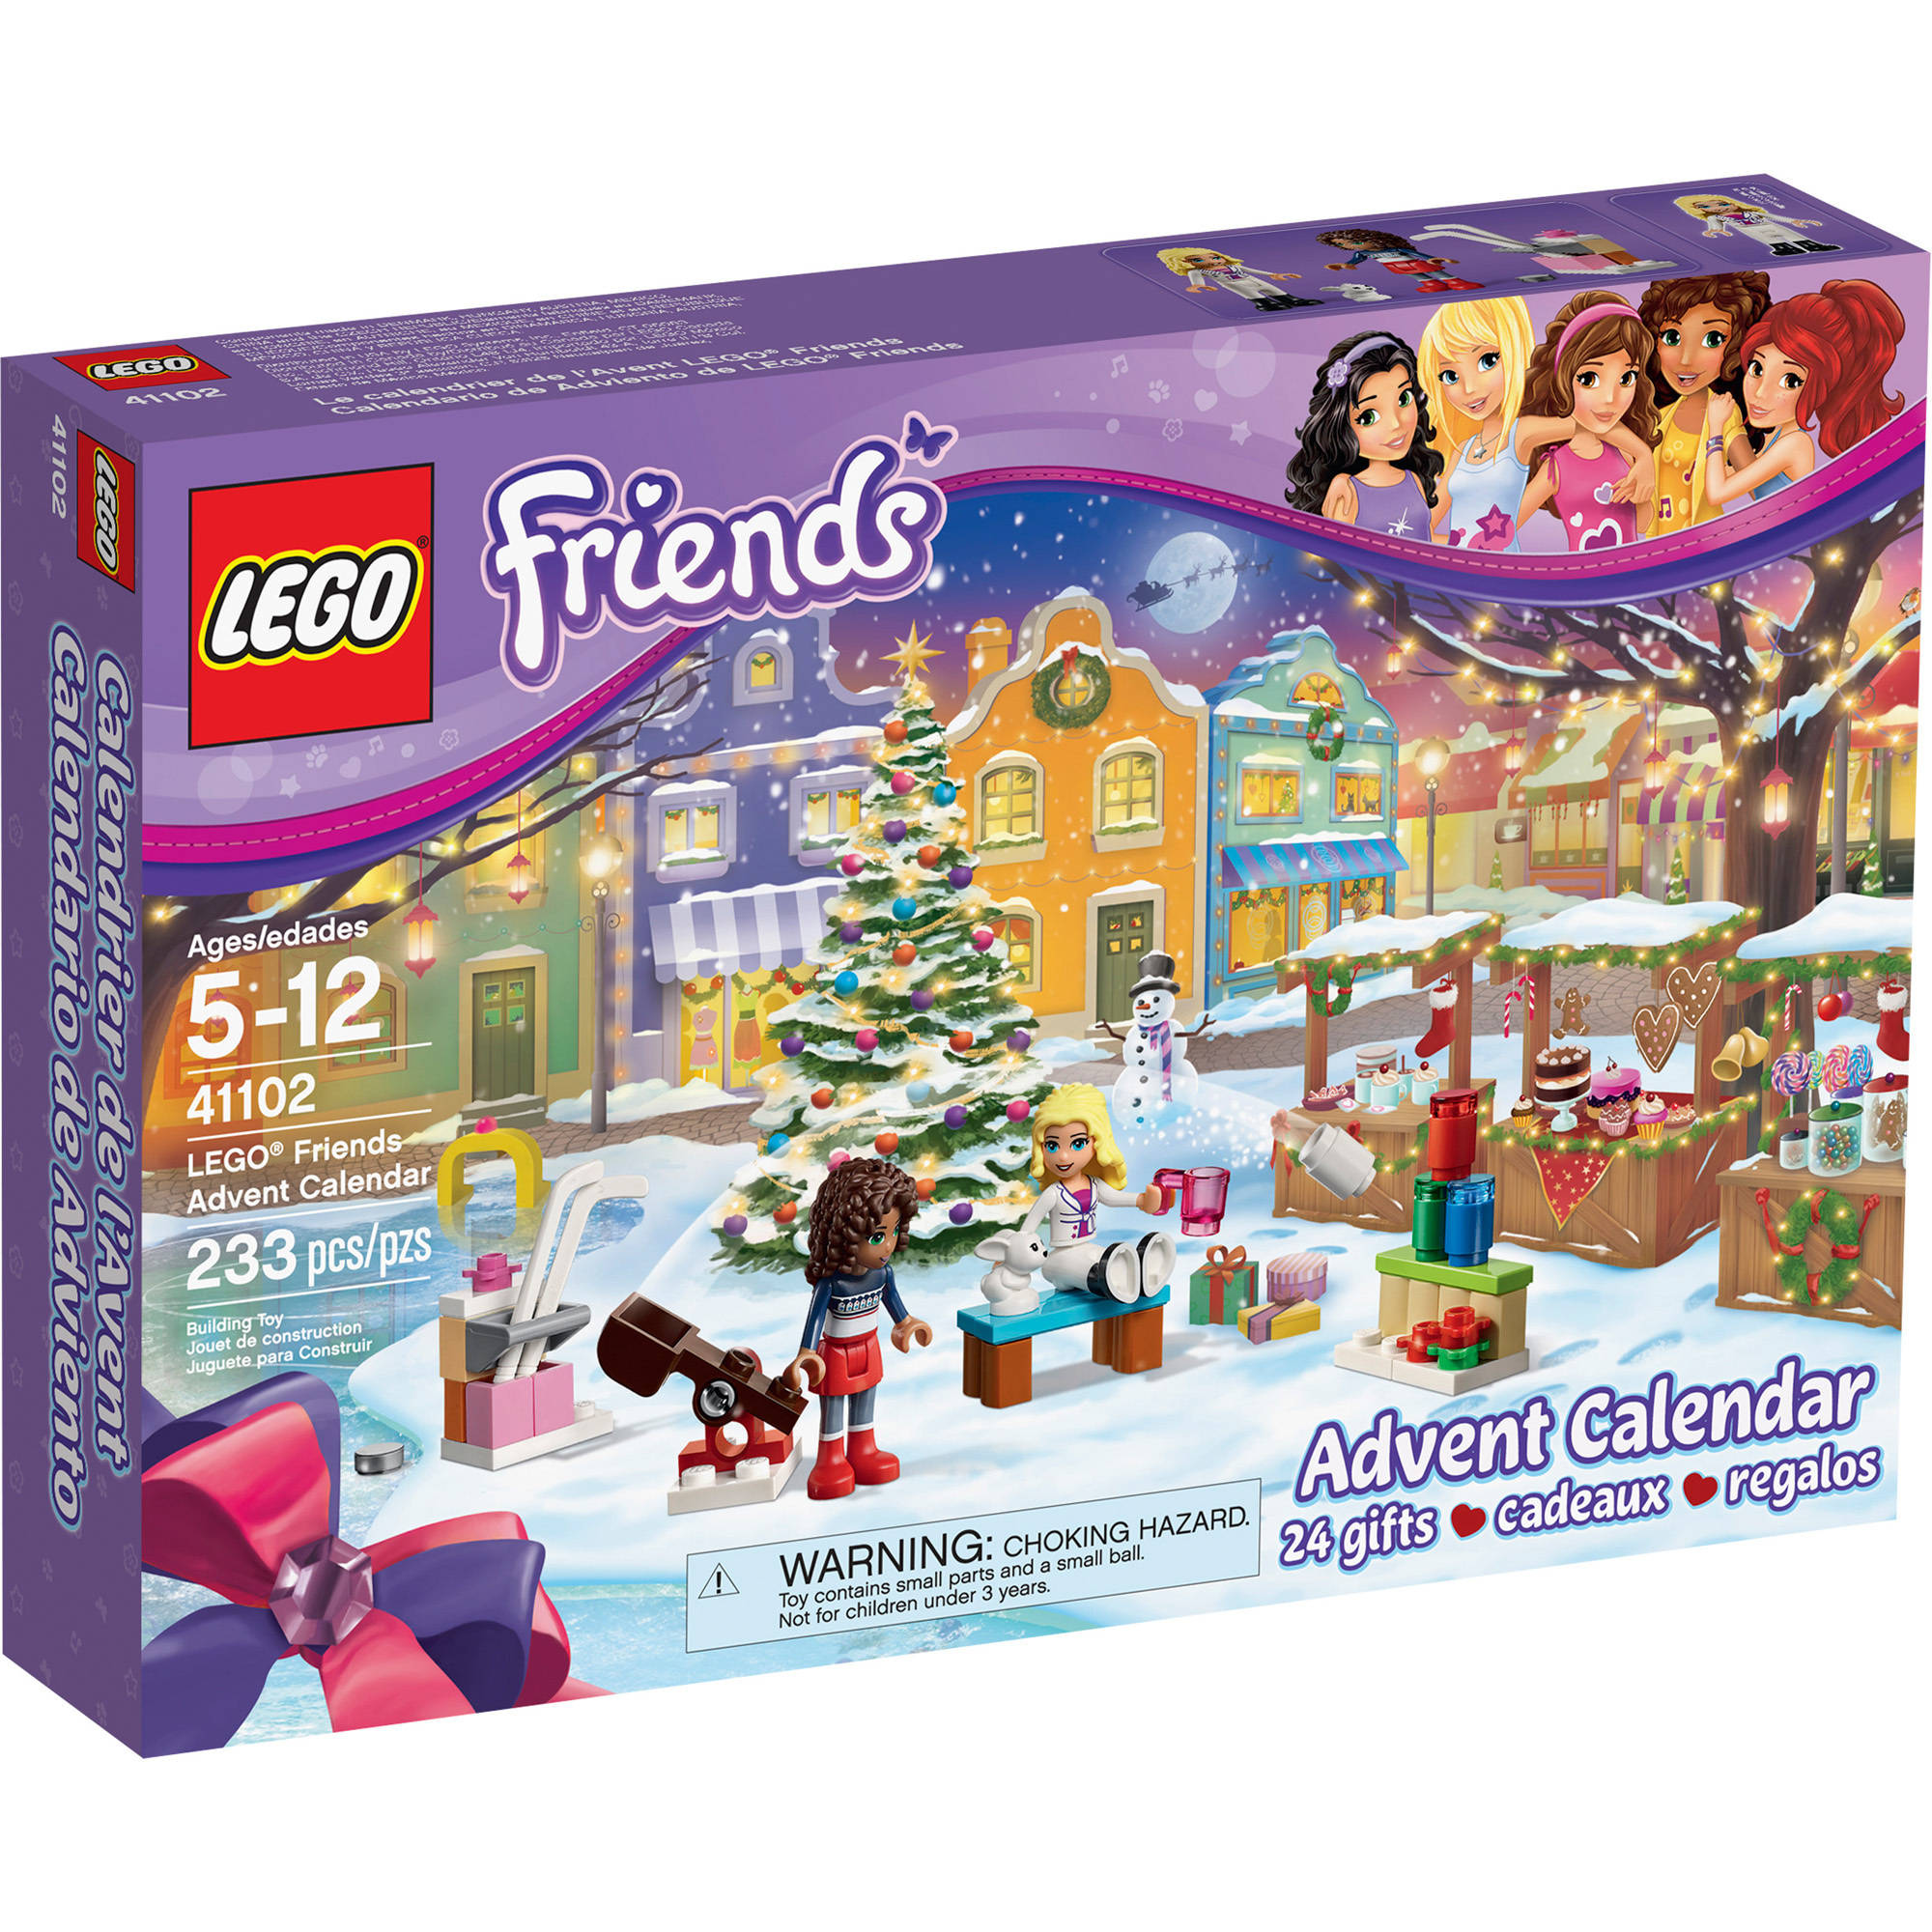 LEGO Friends Advent Calendar 41102  Walmartcom